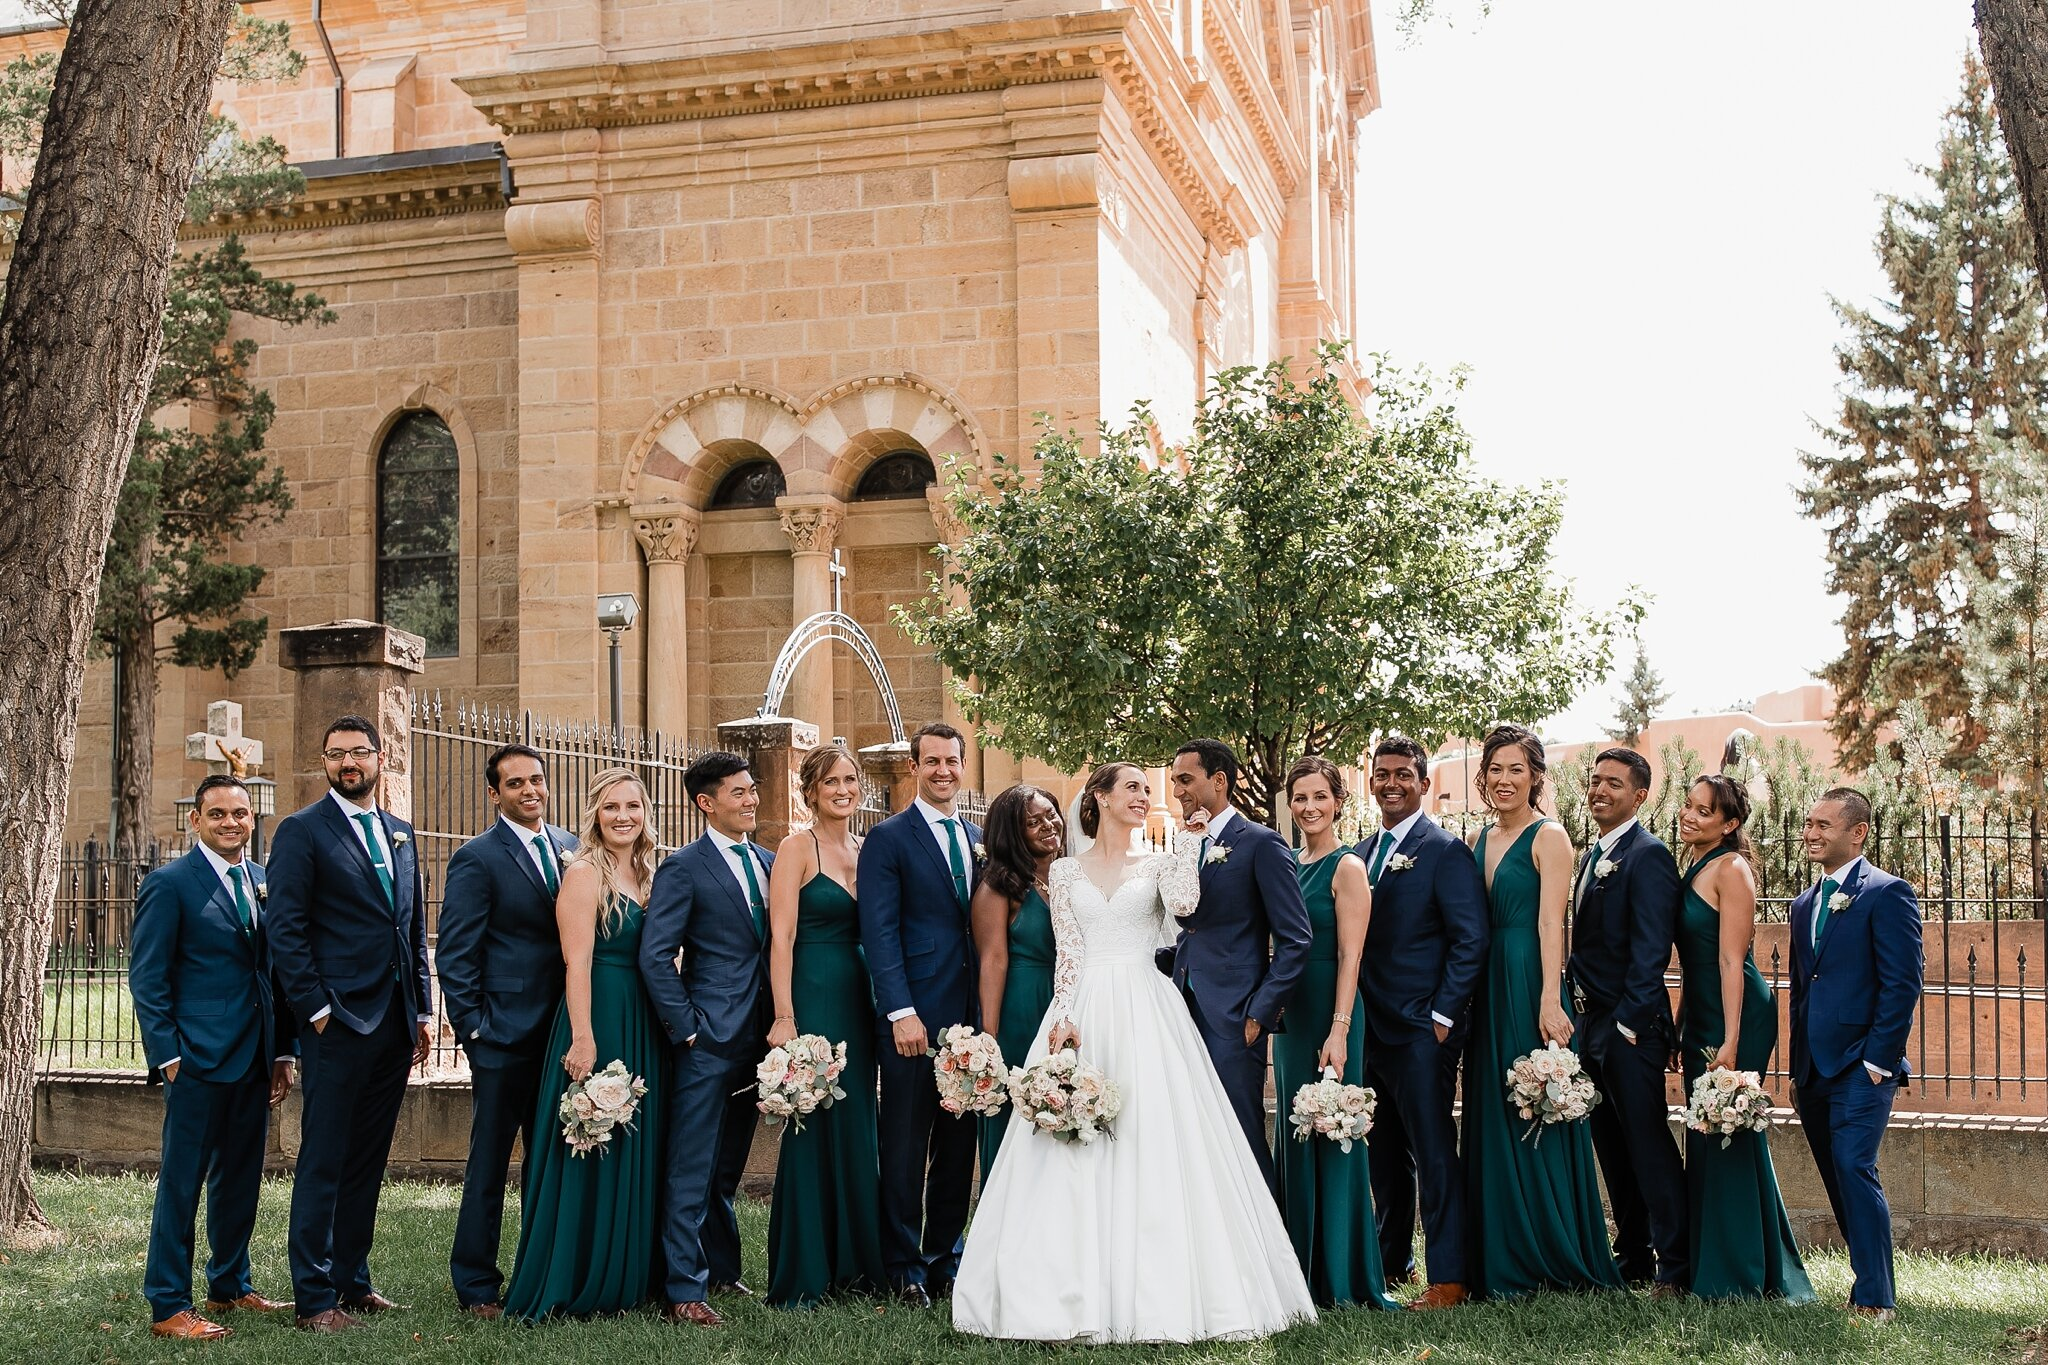 Alicia+lucia+photography+-+albuquerque+wedding+photographer+-+santa+fe+wedding+photography+-+new+mexico+wedding+photographer+-+new+mexico+wedding+-+hindu+wedding+-+catholic+wedding+-+multicultural+wedding+-+santa+fe+wedding_0046.jpg